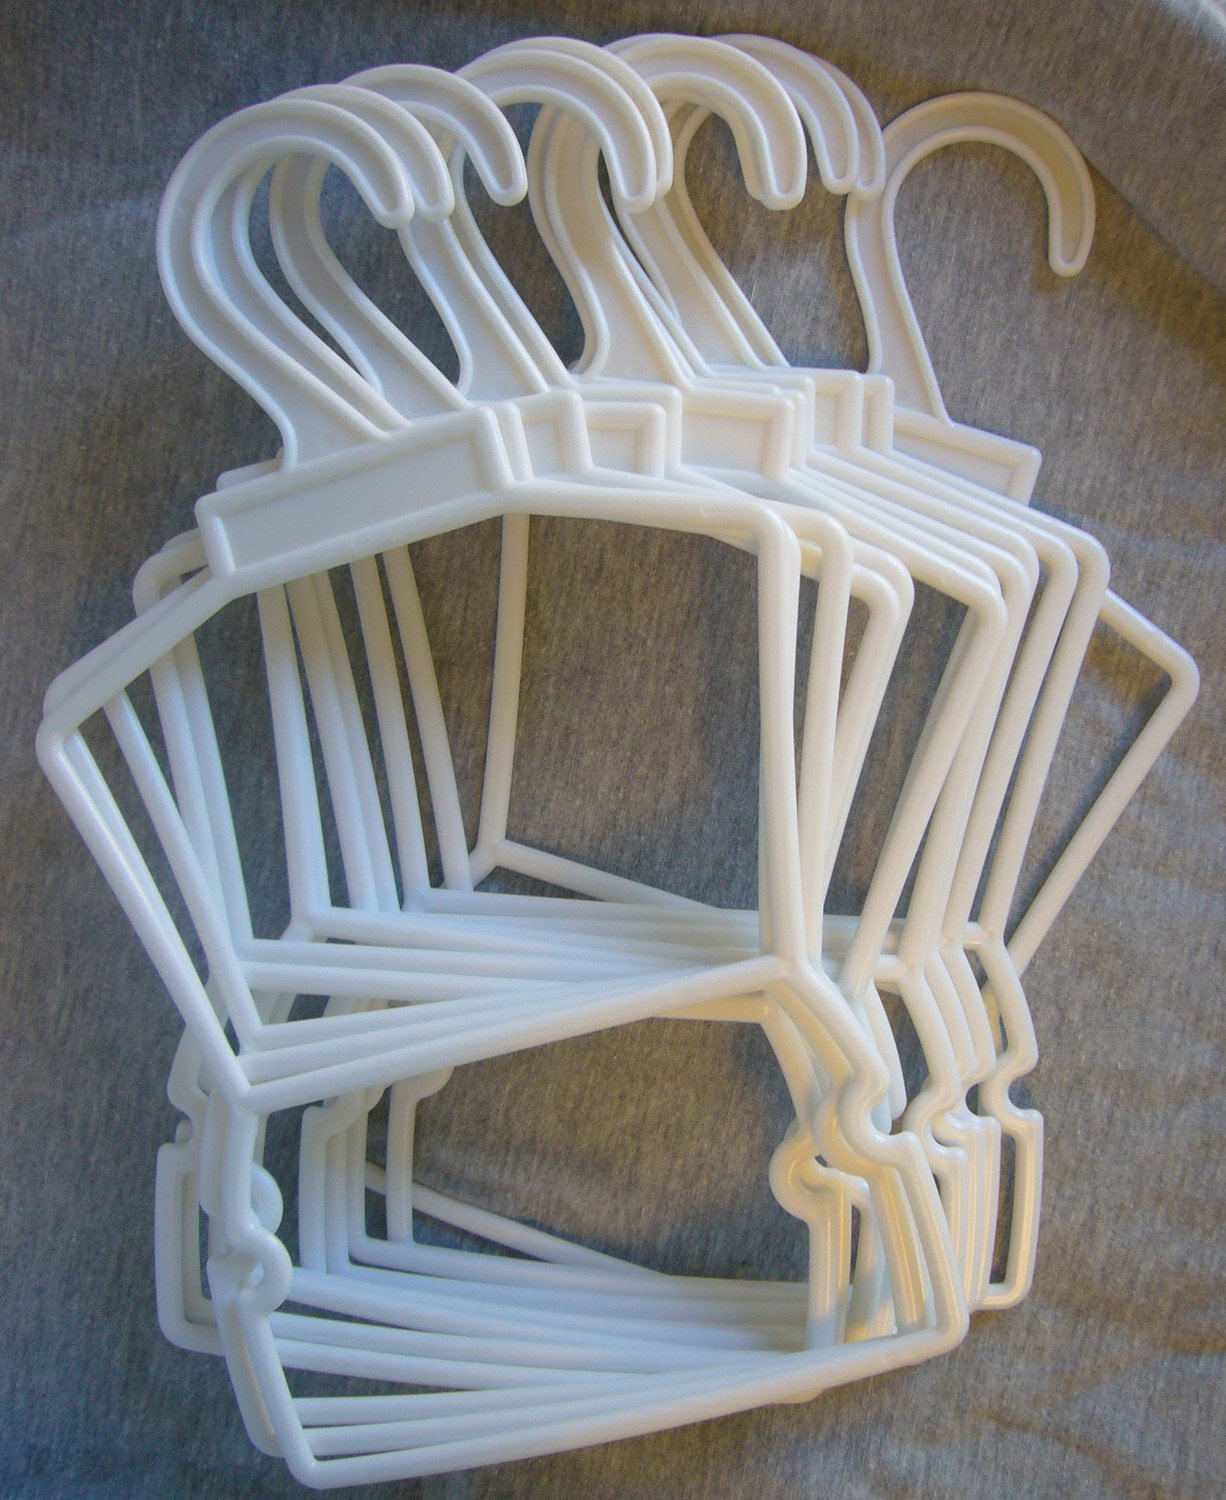 1 Dozen Doppel Tier Hangers for for for 18 Dolls by Doll Clothes Damen Sew Beautiful 741297